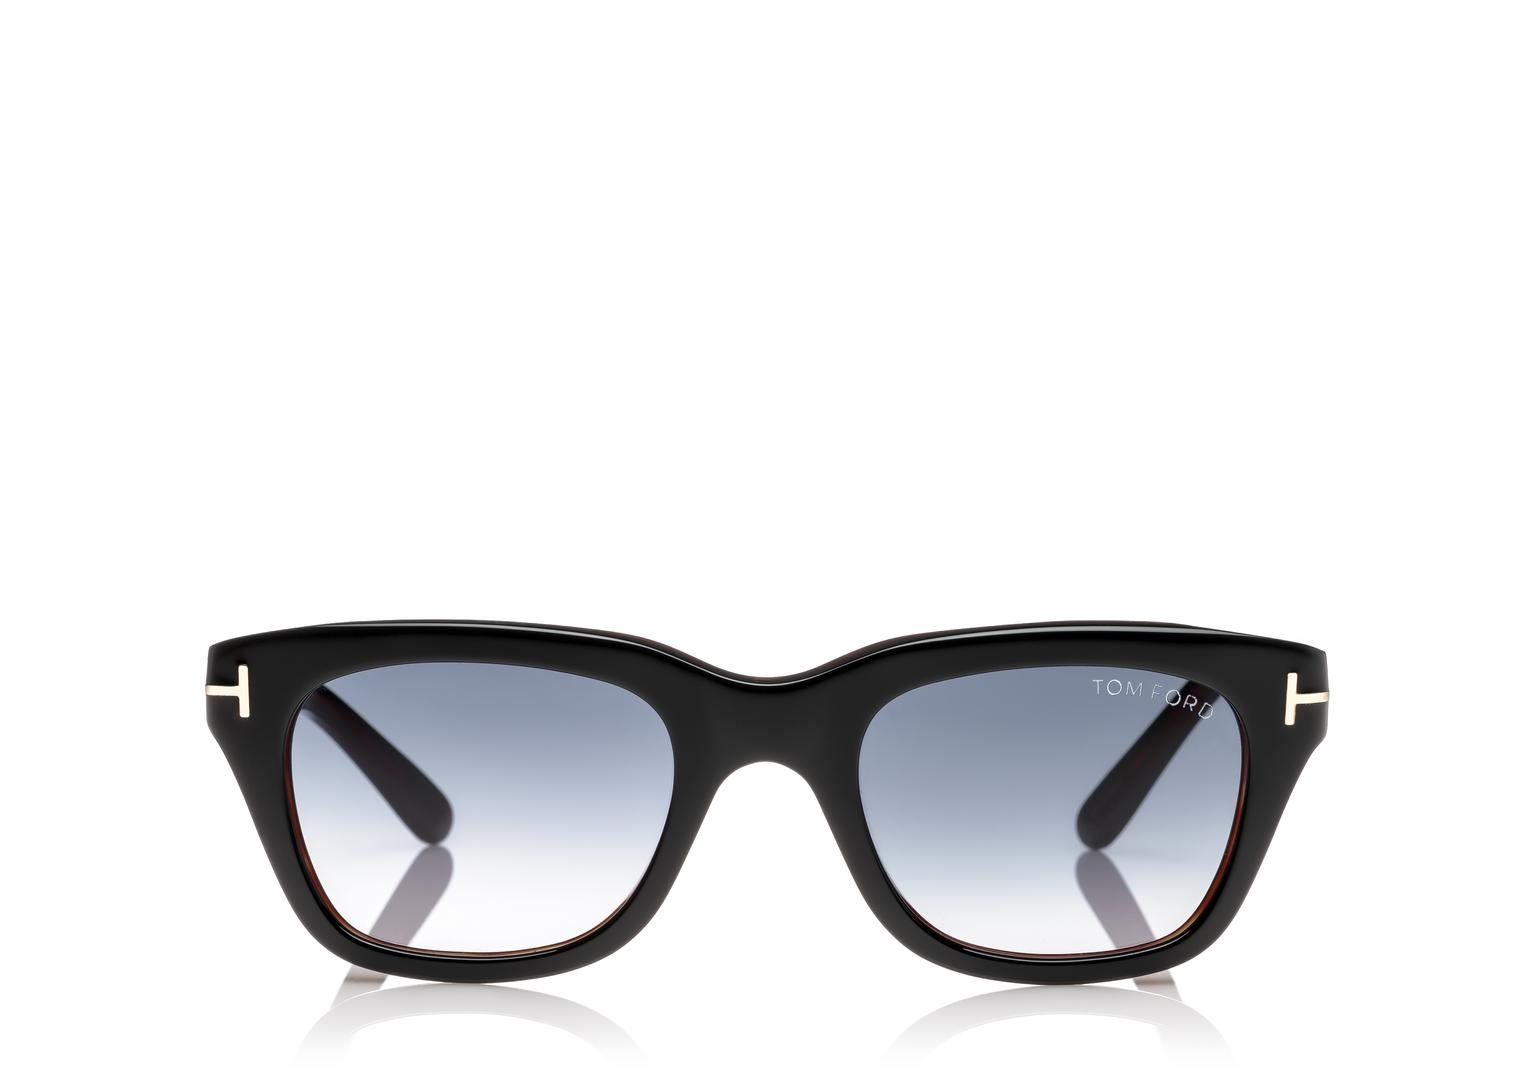 Tom Ford Snowdon Sunglasses Sunglasses Tomford Com